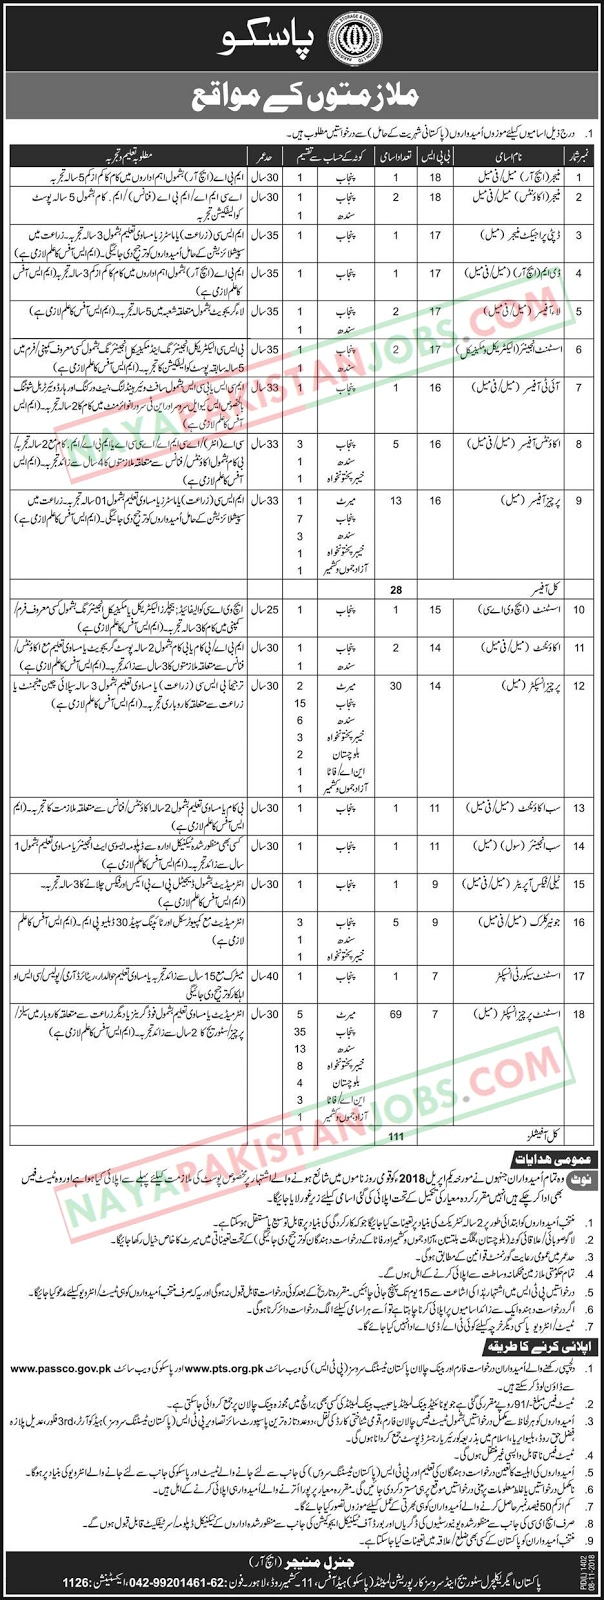 Latest Vacancies Announced in PASSCO.gov.pk Pakistan Agricultural Storage and Services Corporation Limited PASSCO via PTS 8 November 2018 - Naya Pakistan